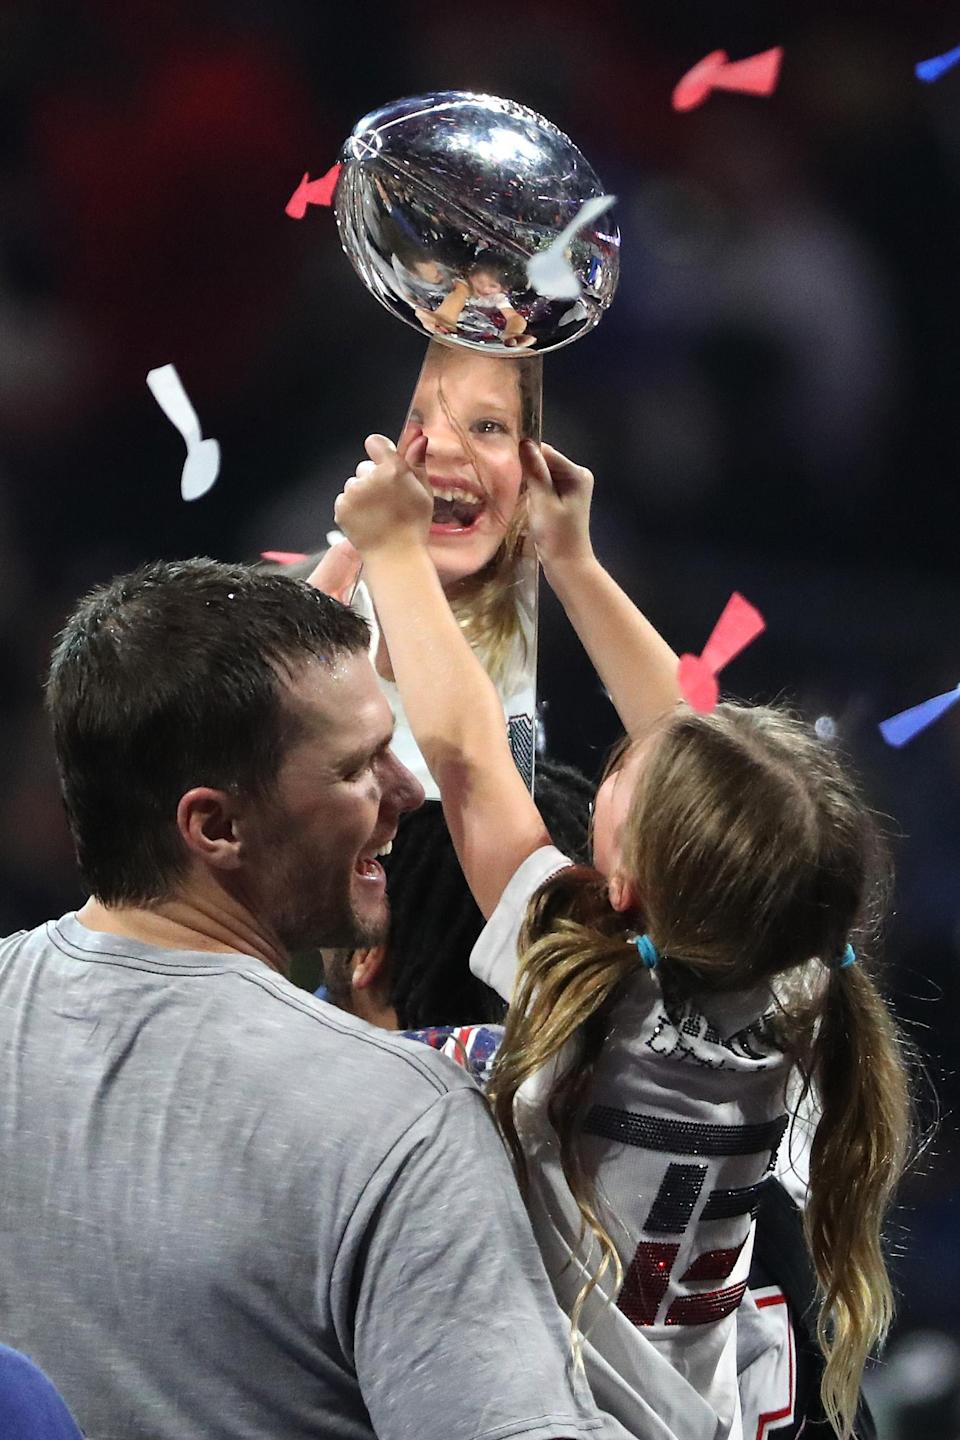 <p>Tom Brady #12 of the New England Patriots and Vivian Lake Brady celebrate with the Vince Lombardi trophy after the teams 13-3 win over Los Angeles Rams during Super Bowl LIII at Mercedes-Benz Stadium on February 03, 2019 in Atlanta, Georgia. (Photo by Streeter Lecka/Getty Images) </p>